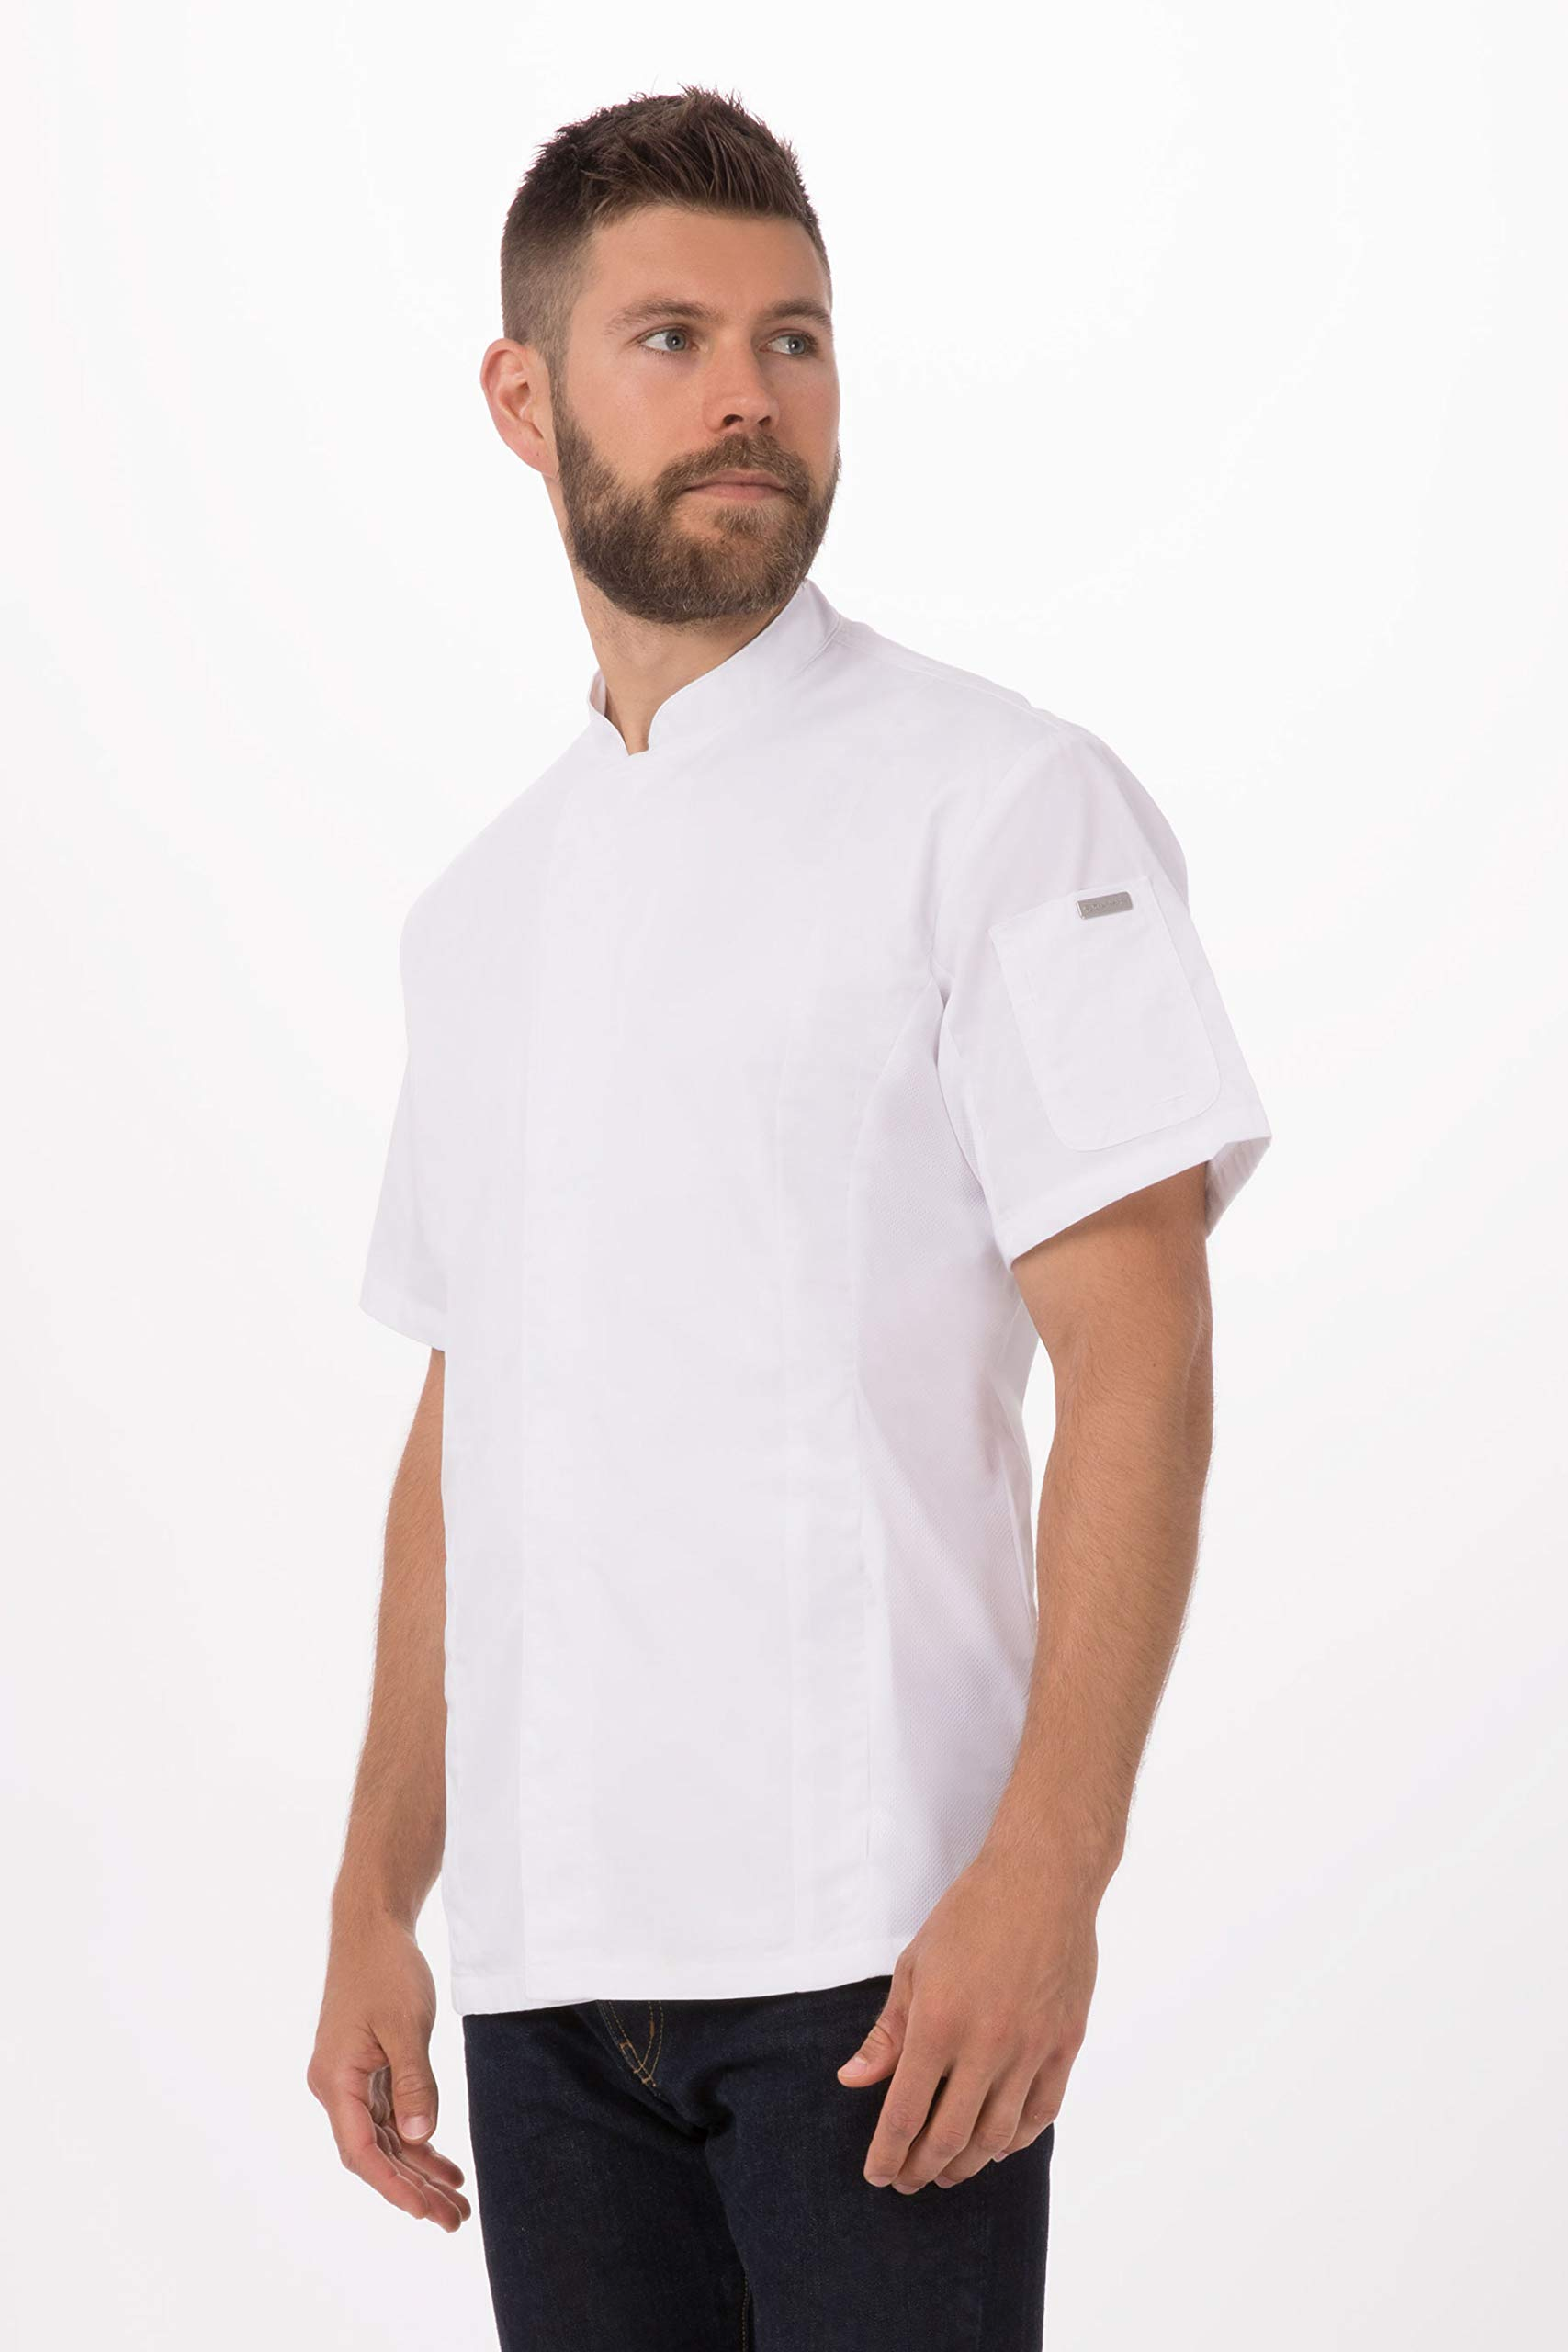 Chef Works Men's Bristol Signature Series Chef Coat, White, Large by Chef Works